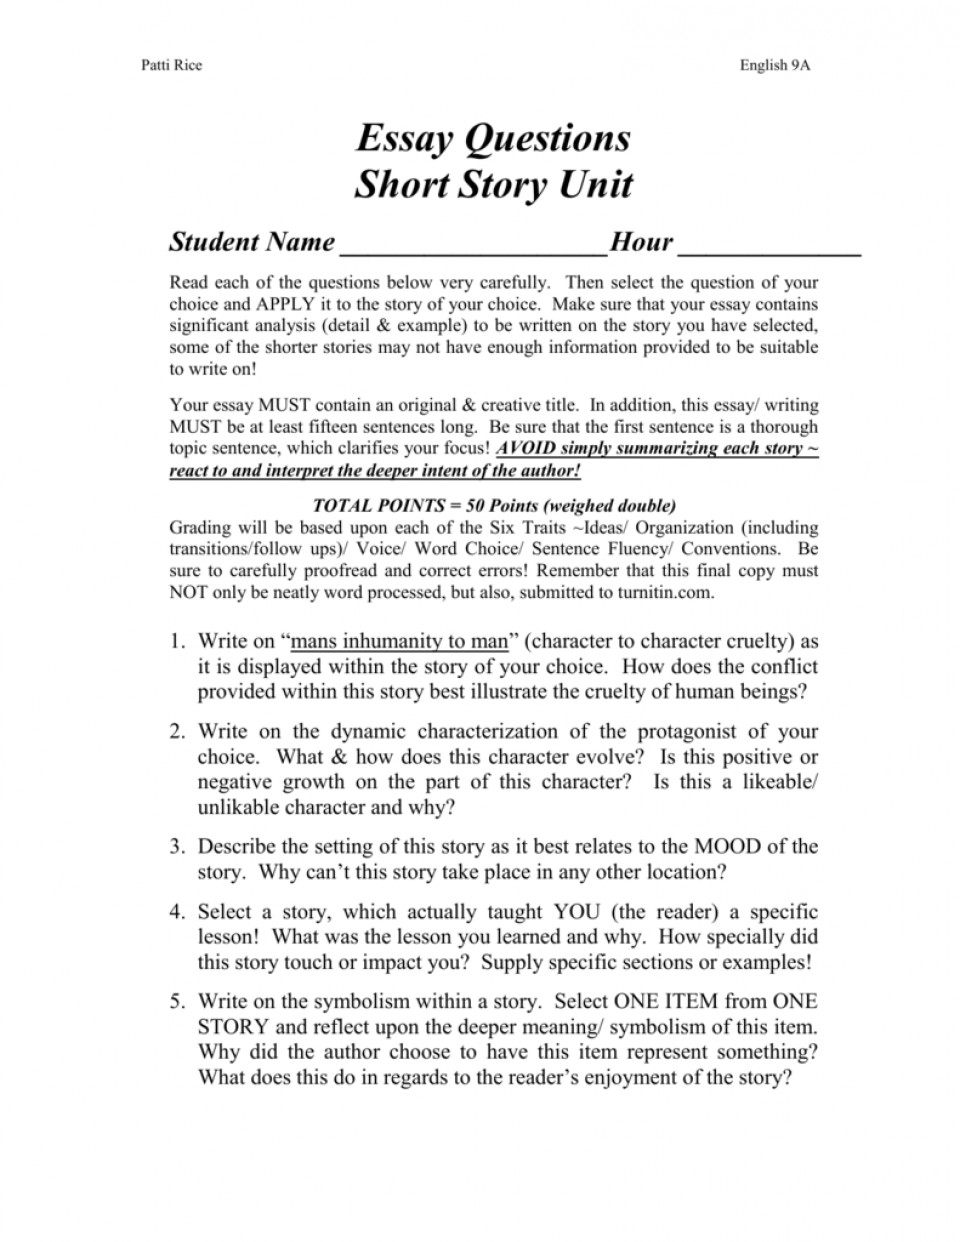 007 008001643 1 Short Stories In Essays Essay Impressive Fiction Analysis Examples Story Format 960